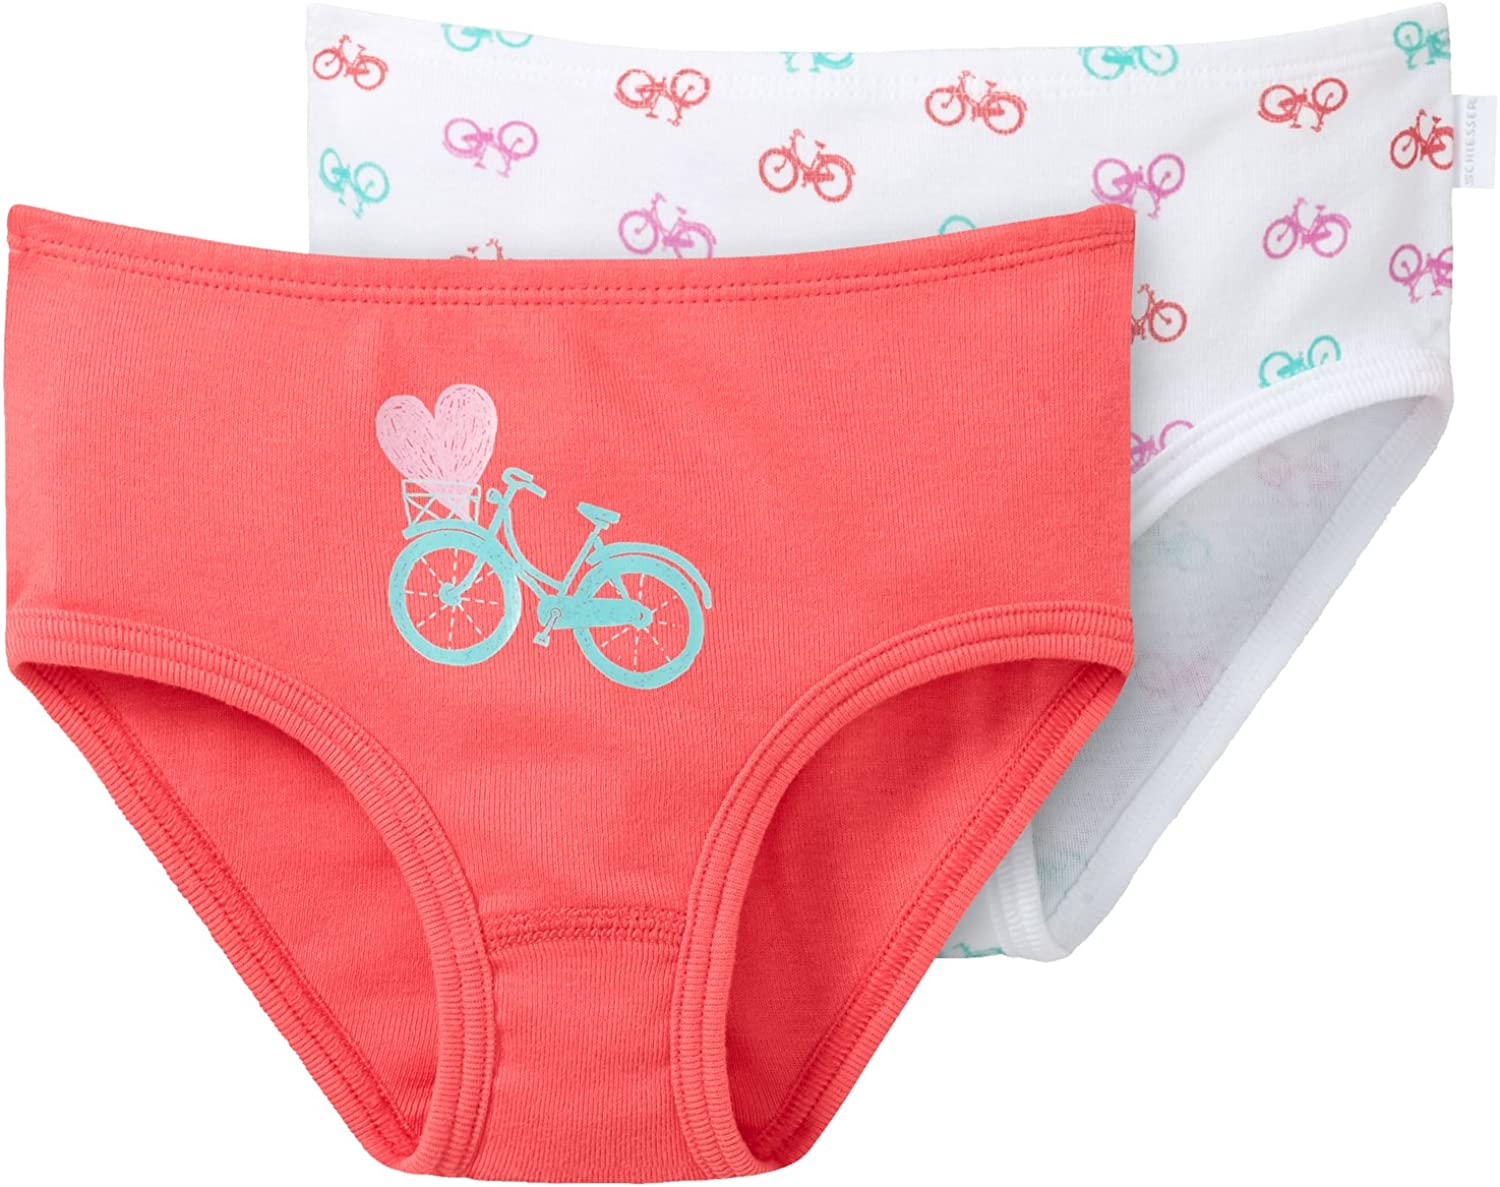 Pack of 2 Schiesser Girls Knickers